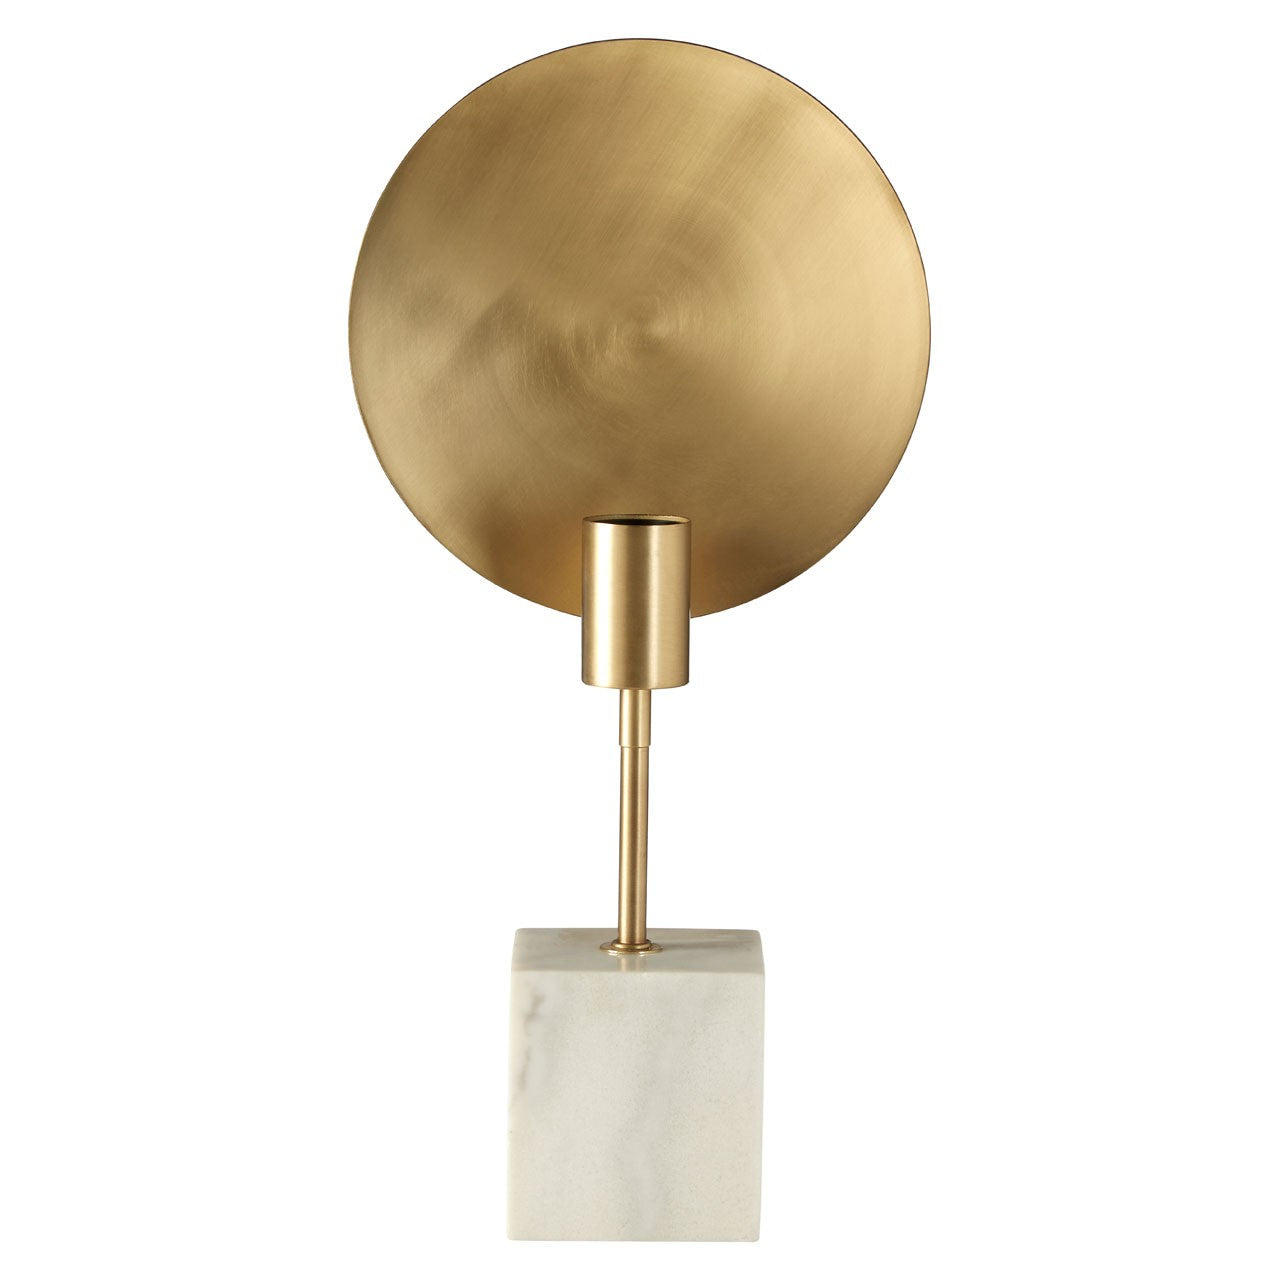 GOLDEN SUN TABLE LAMP